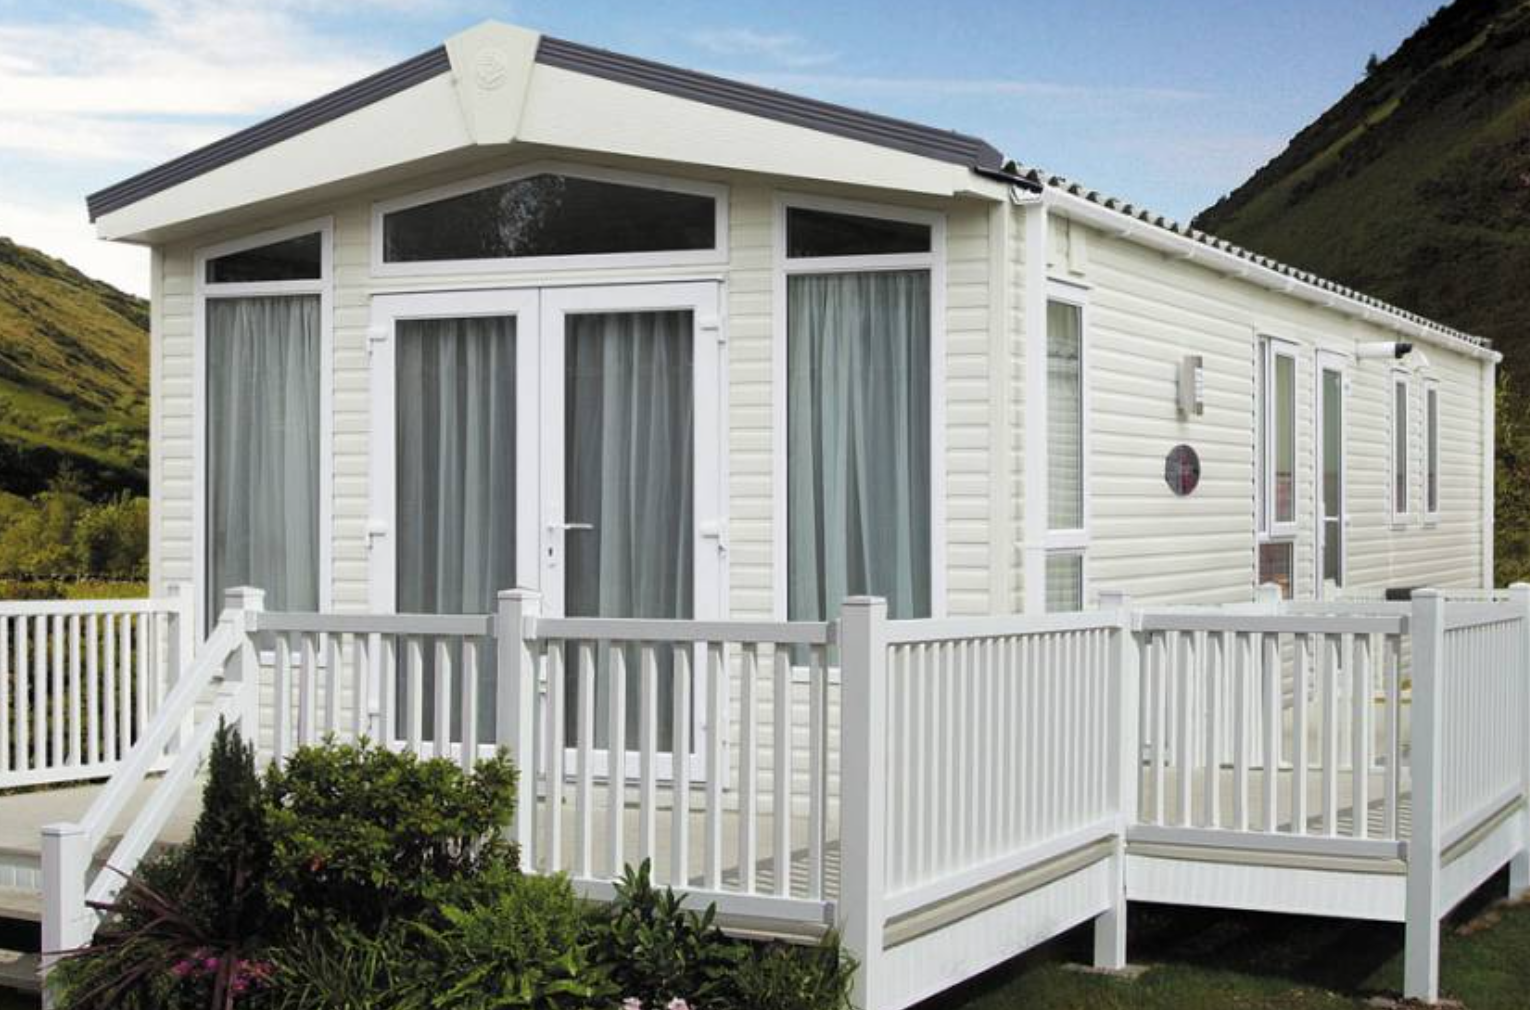 holiday park lincolnshire, glamping pods with hot tub, caravan site lincolnshire